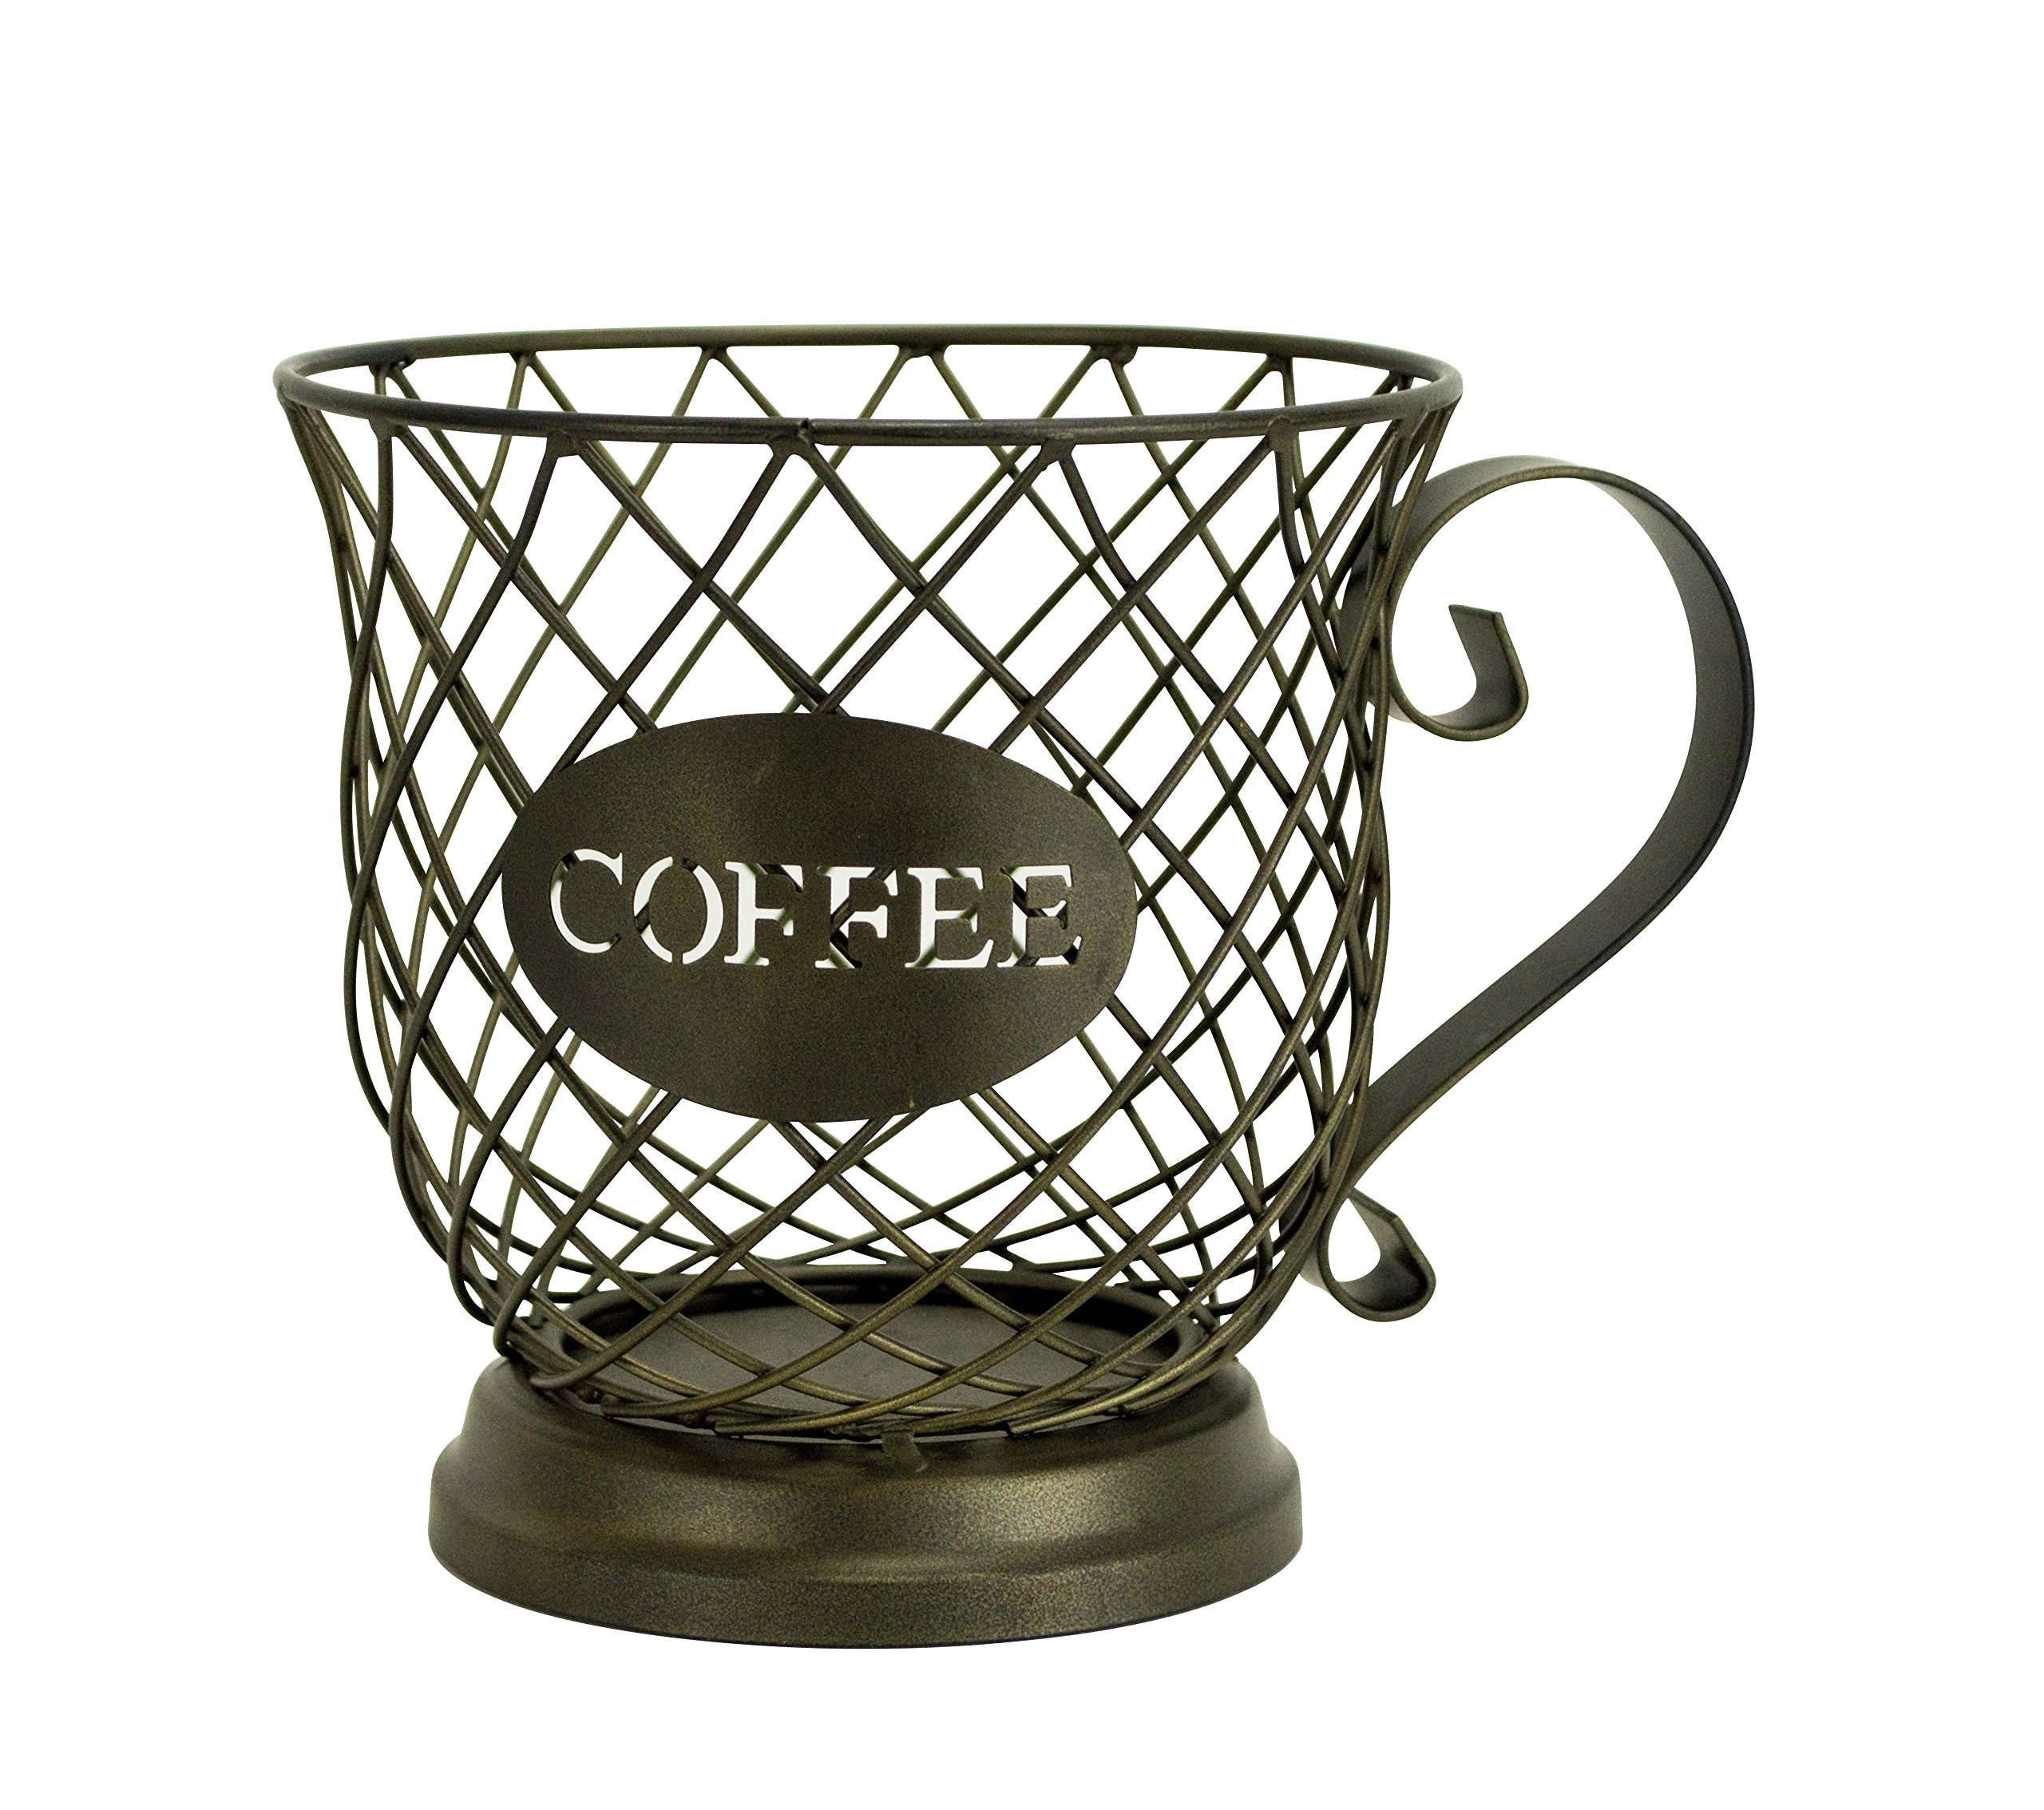 Kup Keeper Coffee & Espresso Pod Holder, Coffee Mug Storage Basket by Boston Warehouse product